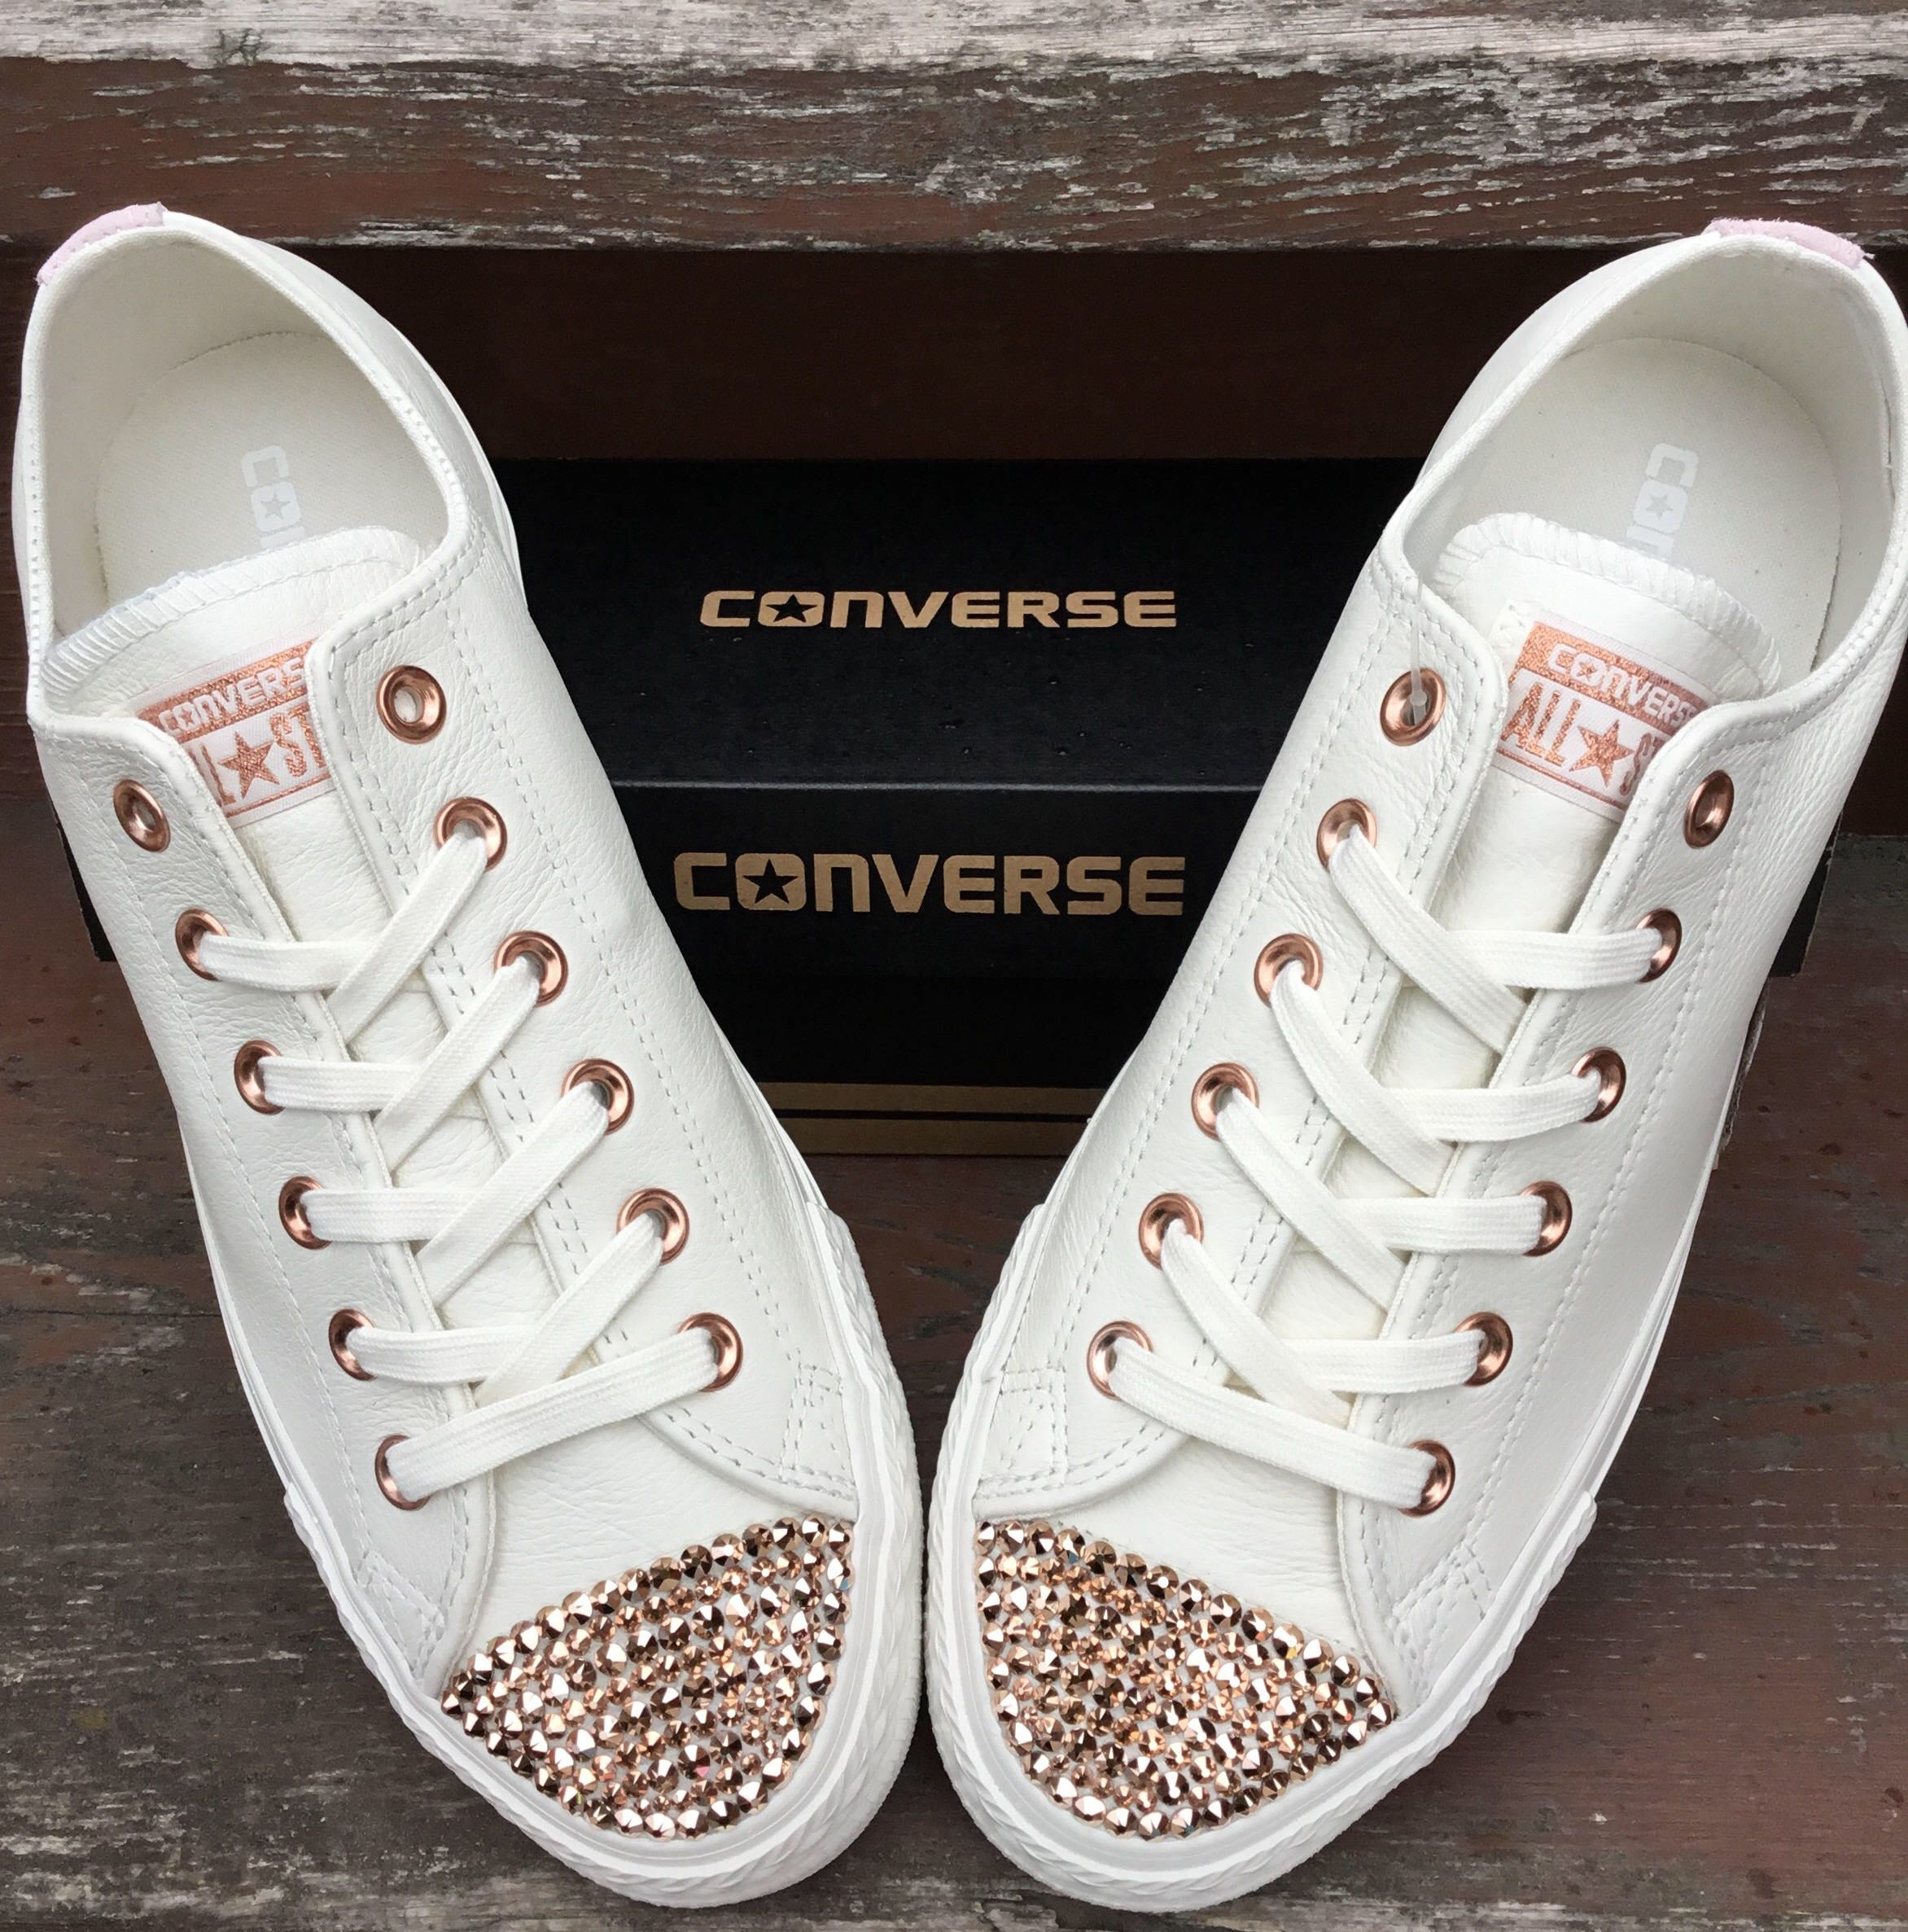 96c56248096d Ivory Converse Leather Low Top Cream Blush Pink Rose Gold Wedding Chuck  Taylor w  Swarovski